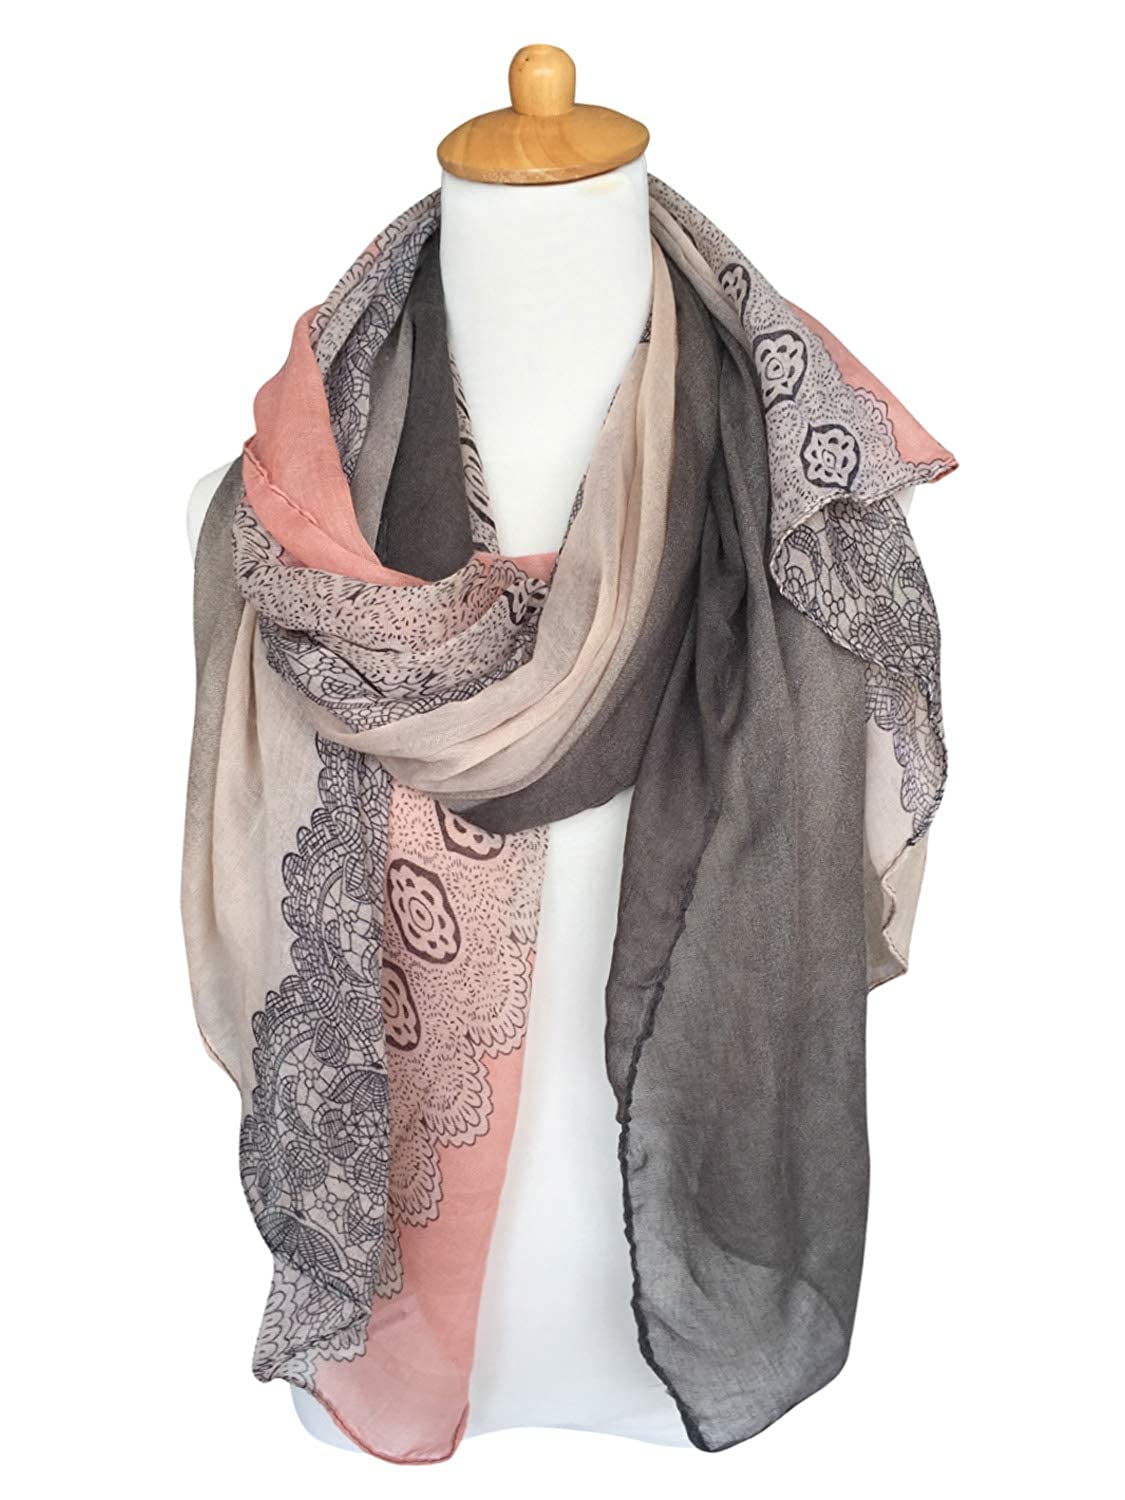 GERINLY Lightweight Scarf Fashion Lace Design Women Hijab Head Wrap Scarf  (Darkgrey Pink) at Amazon Women s Clothing store  4ca7bf229